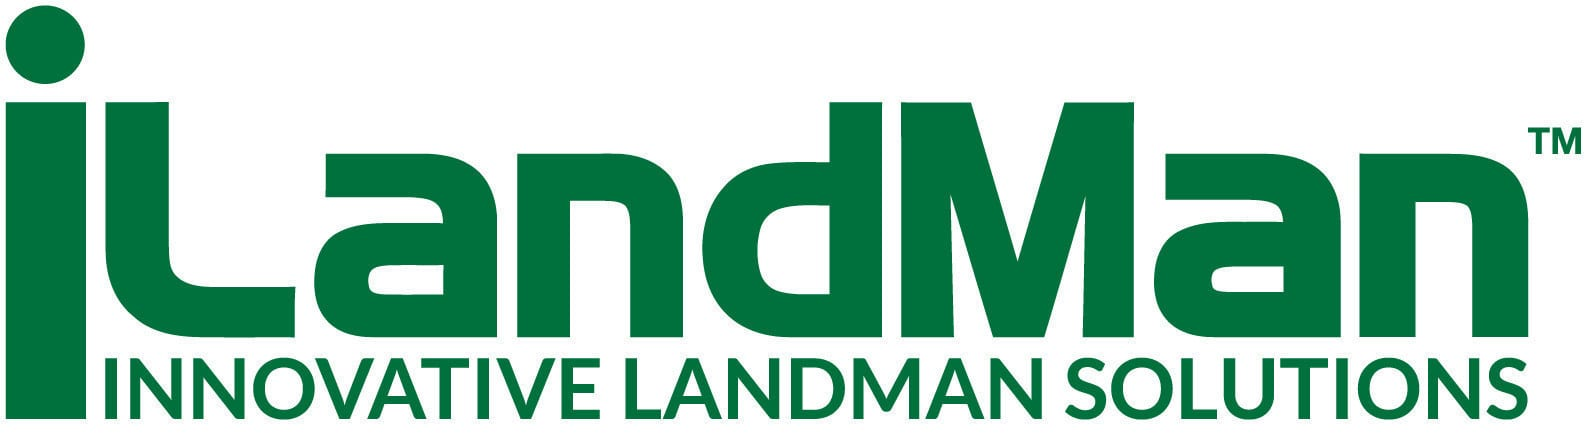 Oil and gas lease management software for the modern E&P. (PRNewsFoto/iLandMan)